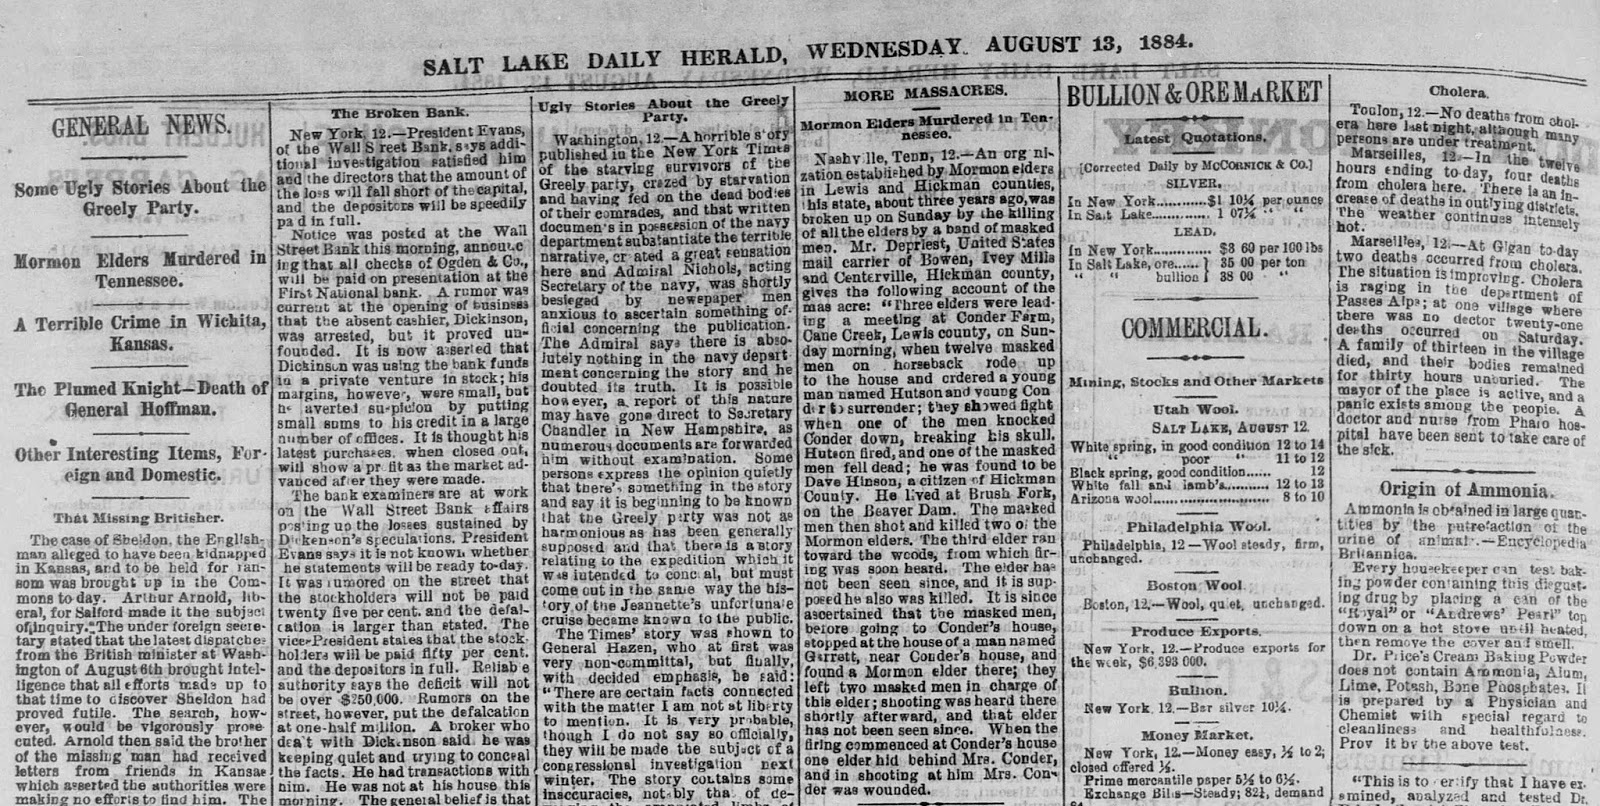 August 13, 1884 Salt Lake Daily Herald newspaper with article on the Cane Creek Massacre